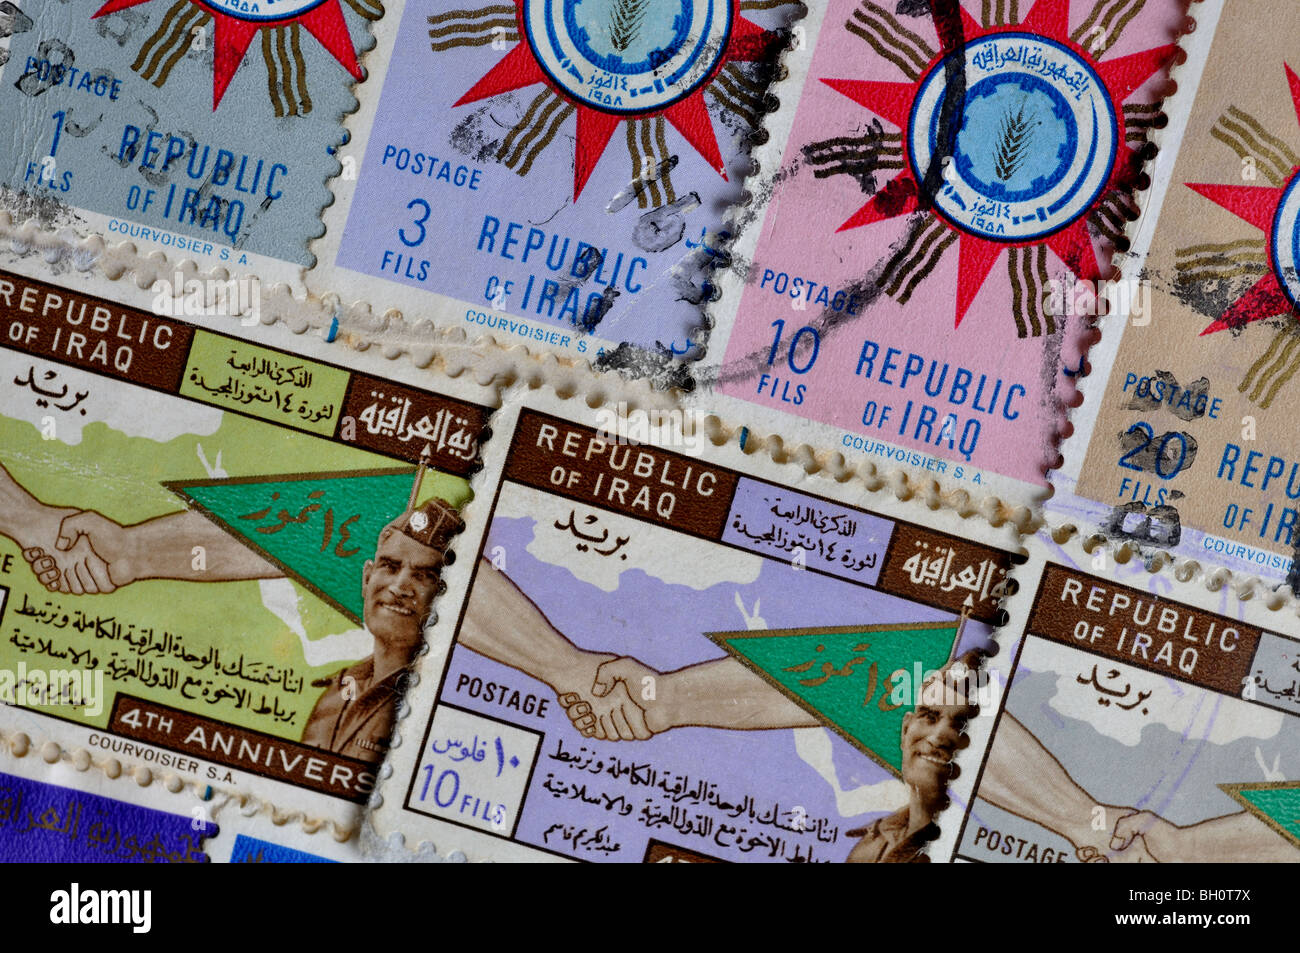 Iraq postage stamps in stamp album - Stock Image